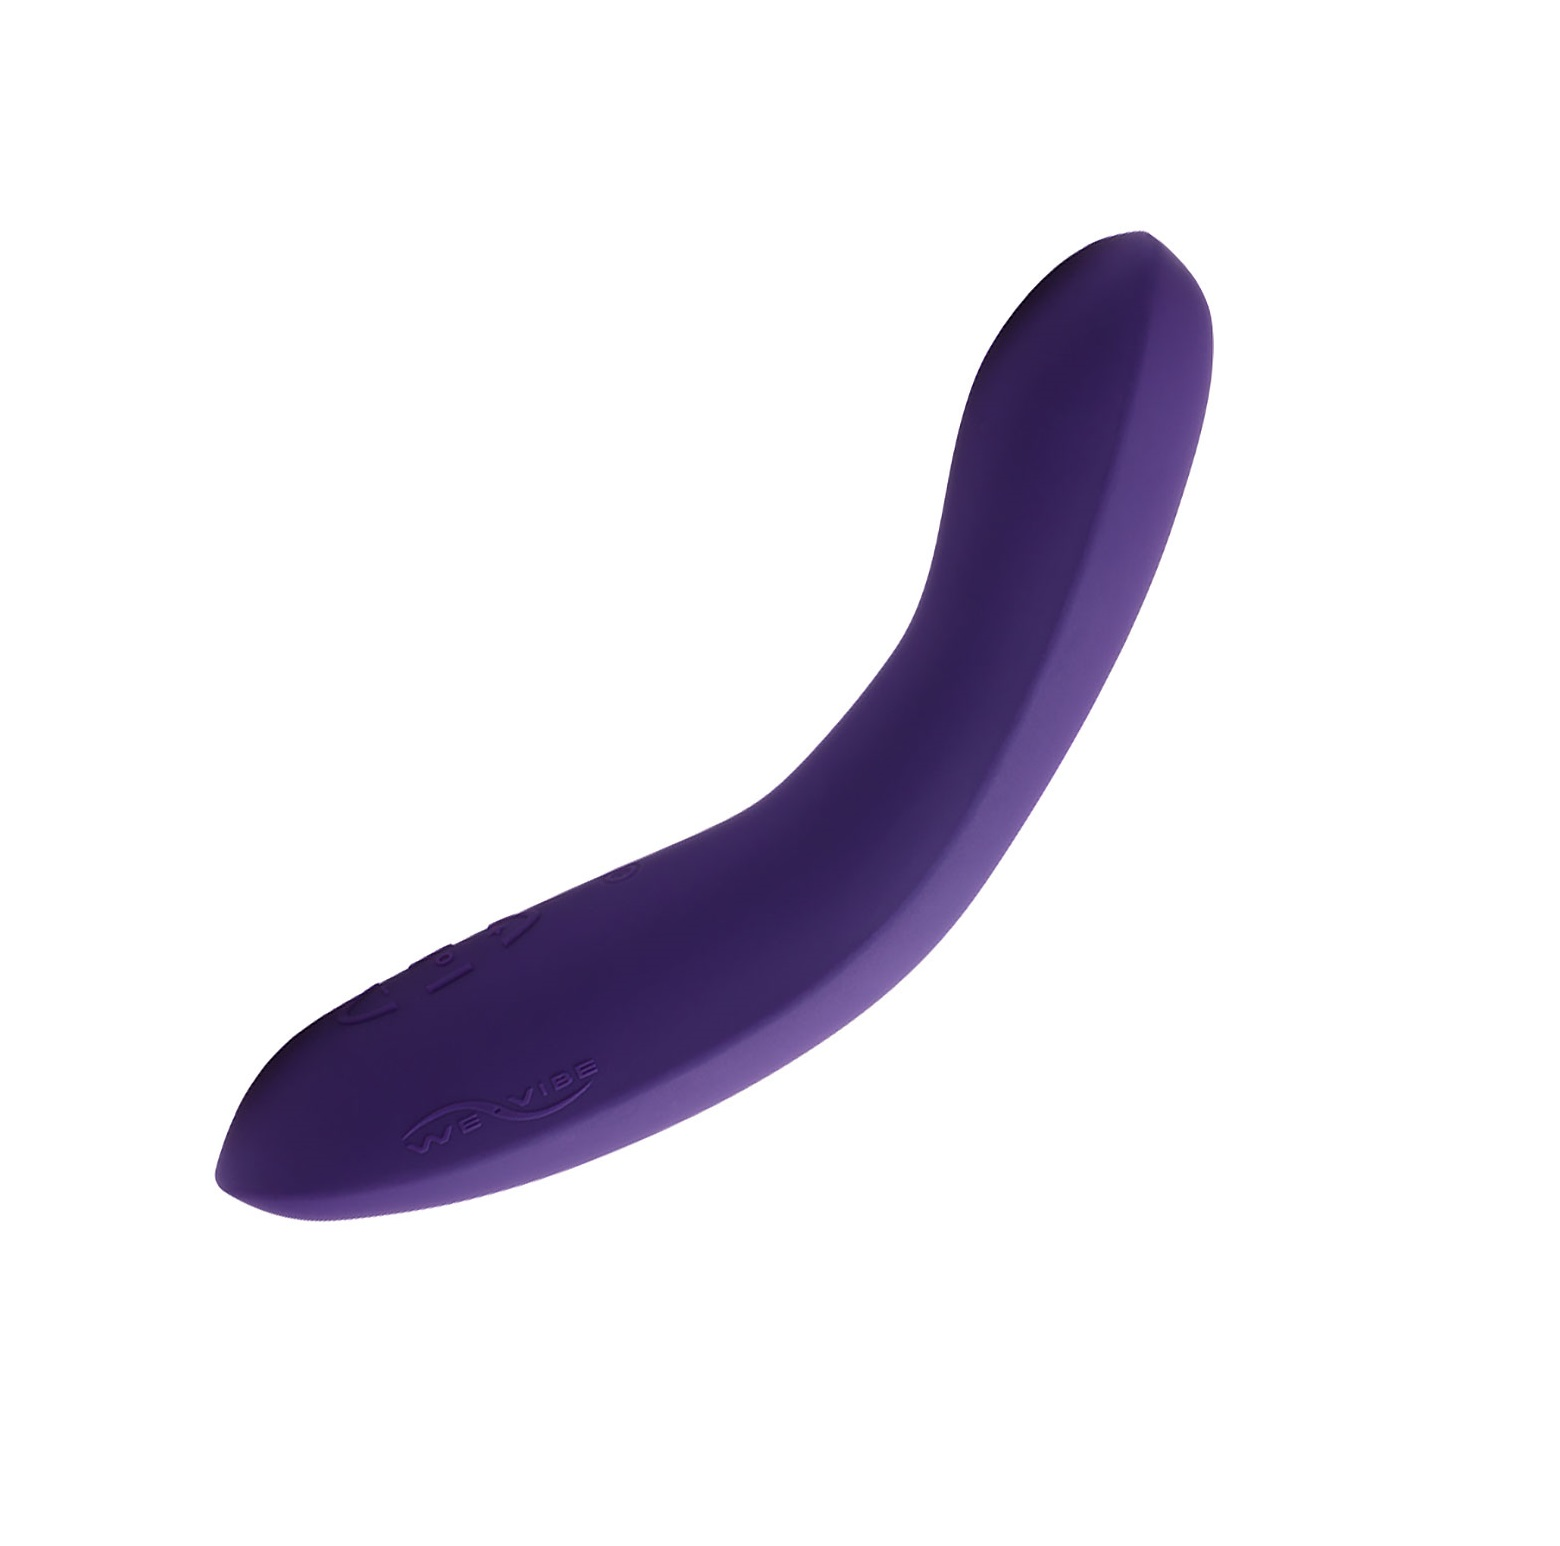 We-Vibe Rave - Vibratorer - Lovecraft Online Sex Shop-4790